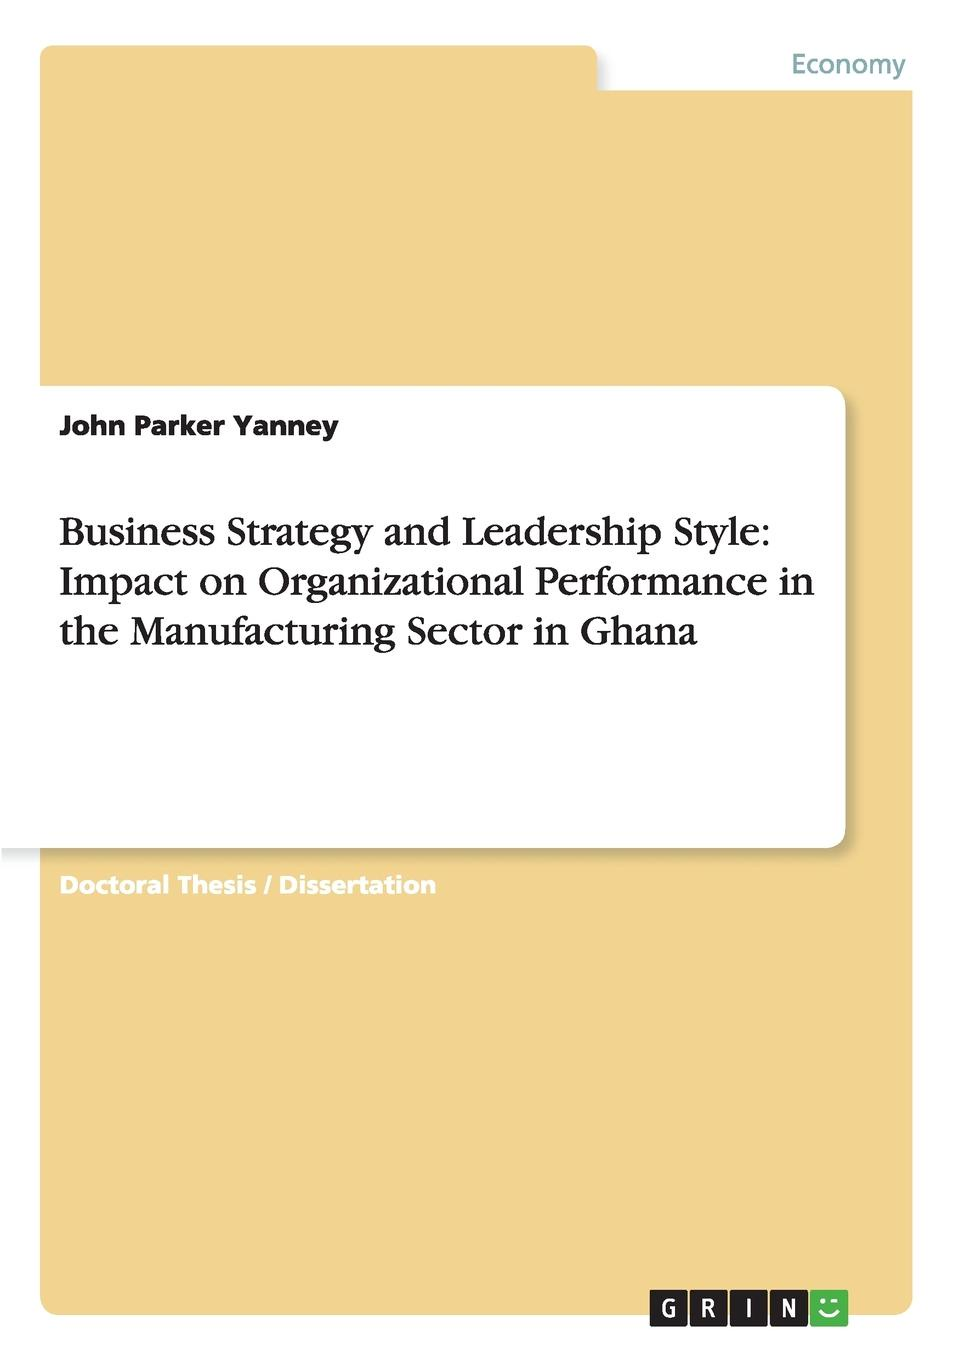 John Parker Yanney Business Strategy and Leadership Style. Impact on Organizational Performance in the Manufacturing Sector in Ghana joe calloway never by chance aligning people and strategy through intentional leadership